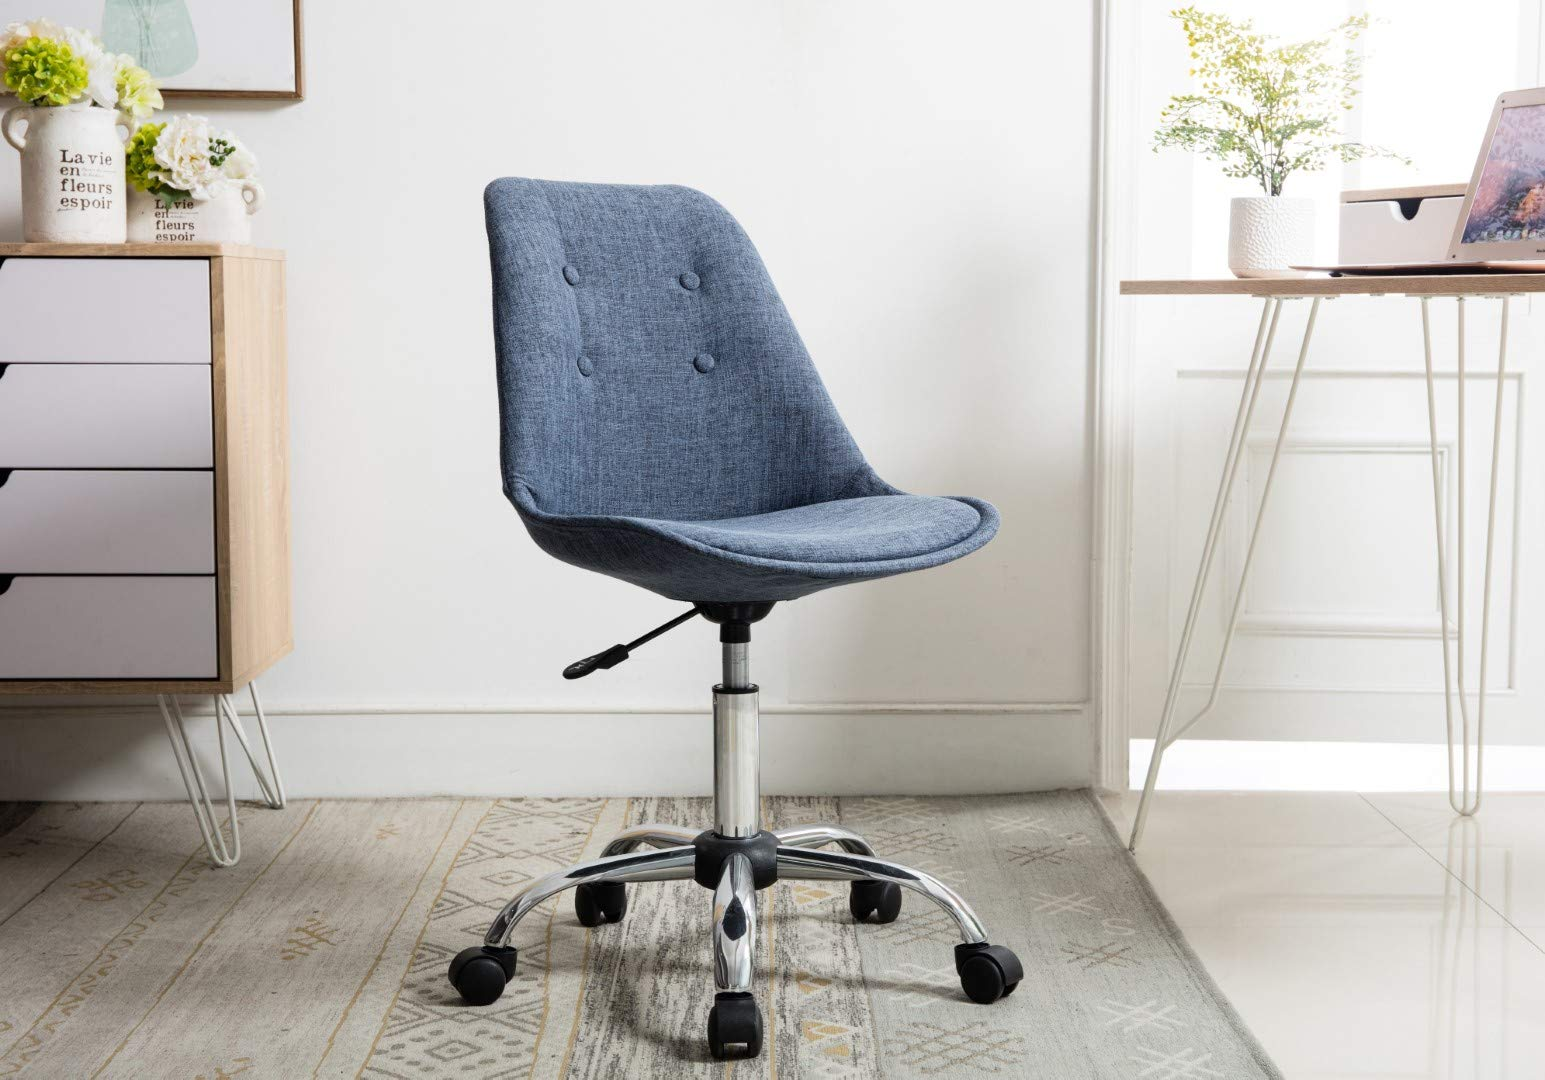 Porthos Home TFC051A BLU Office Chair, Designer Office Chairs with Wheels, Premium Quality Comfort 360 Degree Swivel Height Adjustable, One Size, Blue by Porthos Home